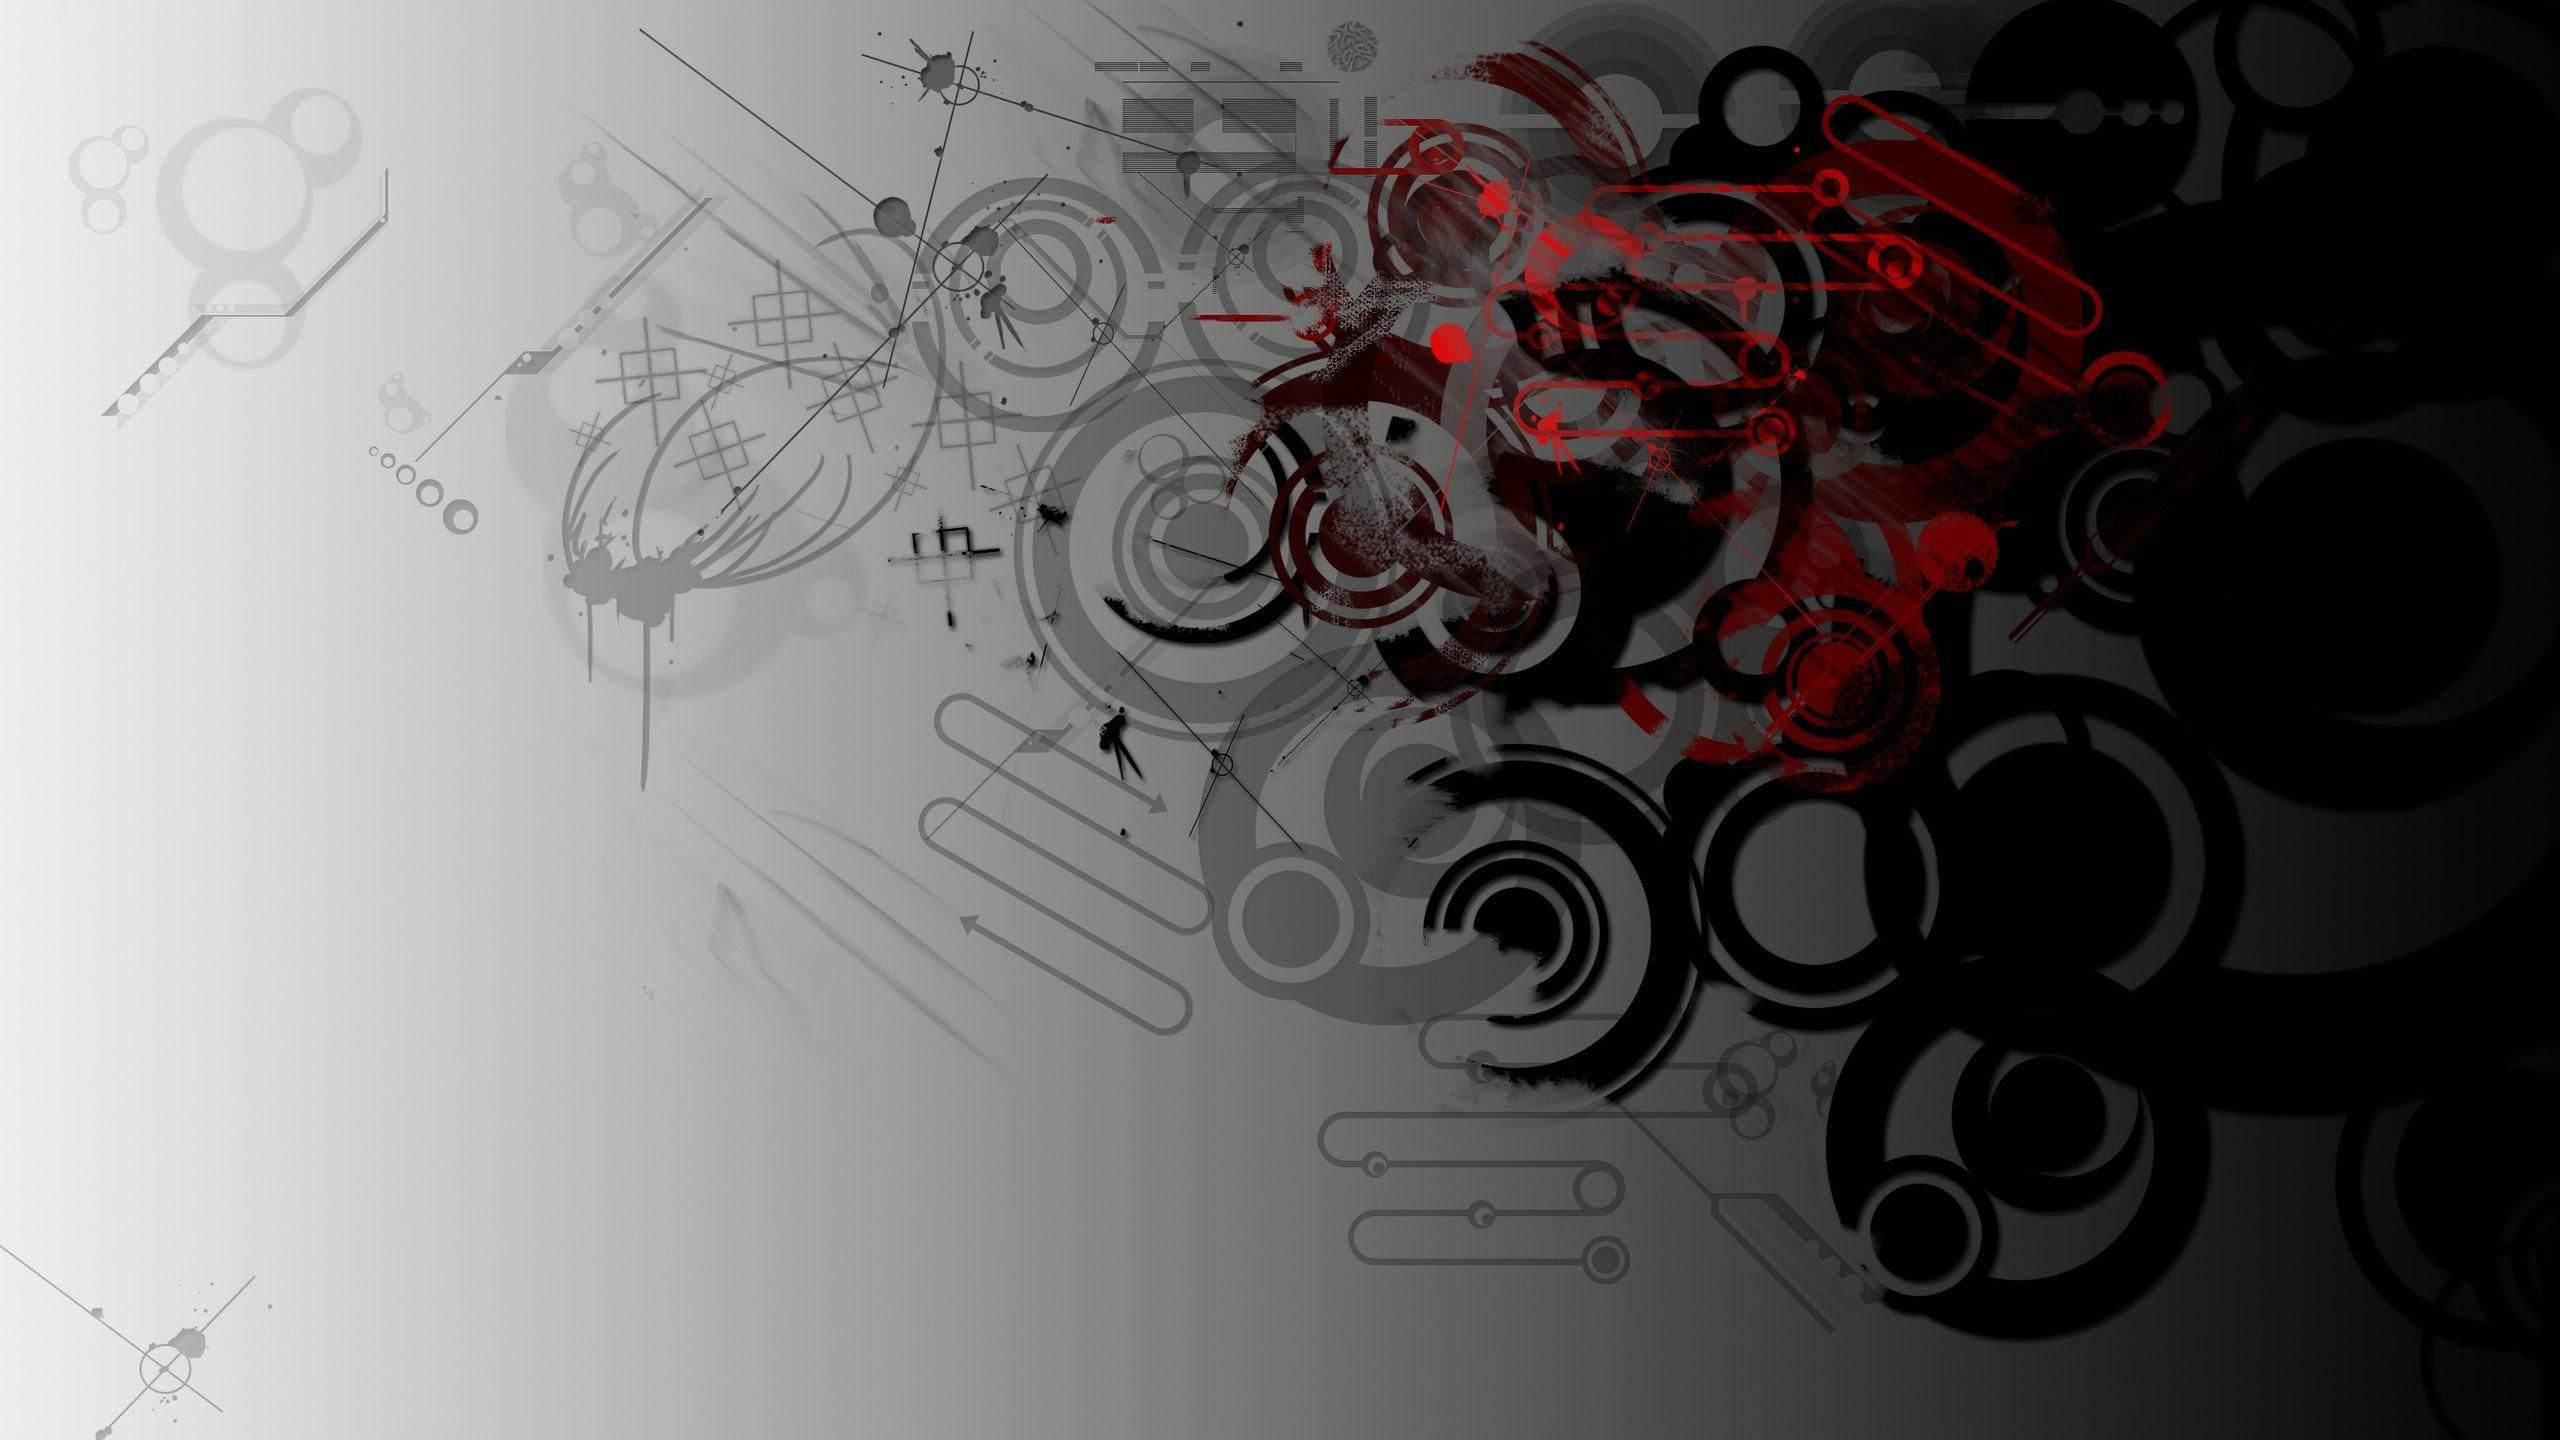 Modern Web Design Elements For An Effective Website Abstract Black Abstract Computer Wallpaper